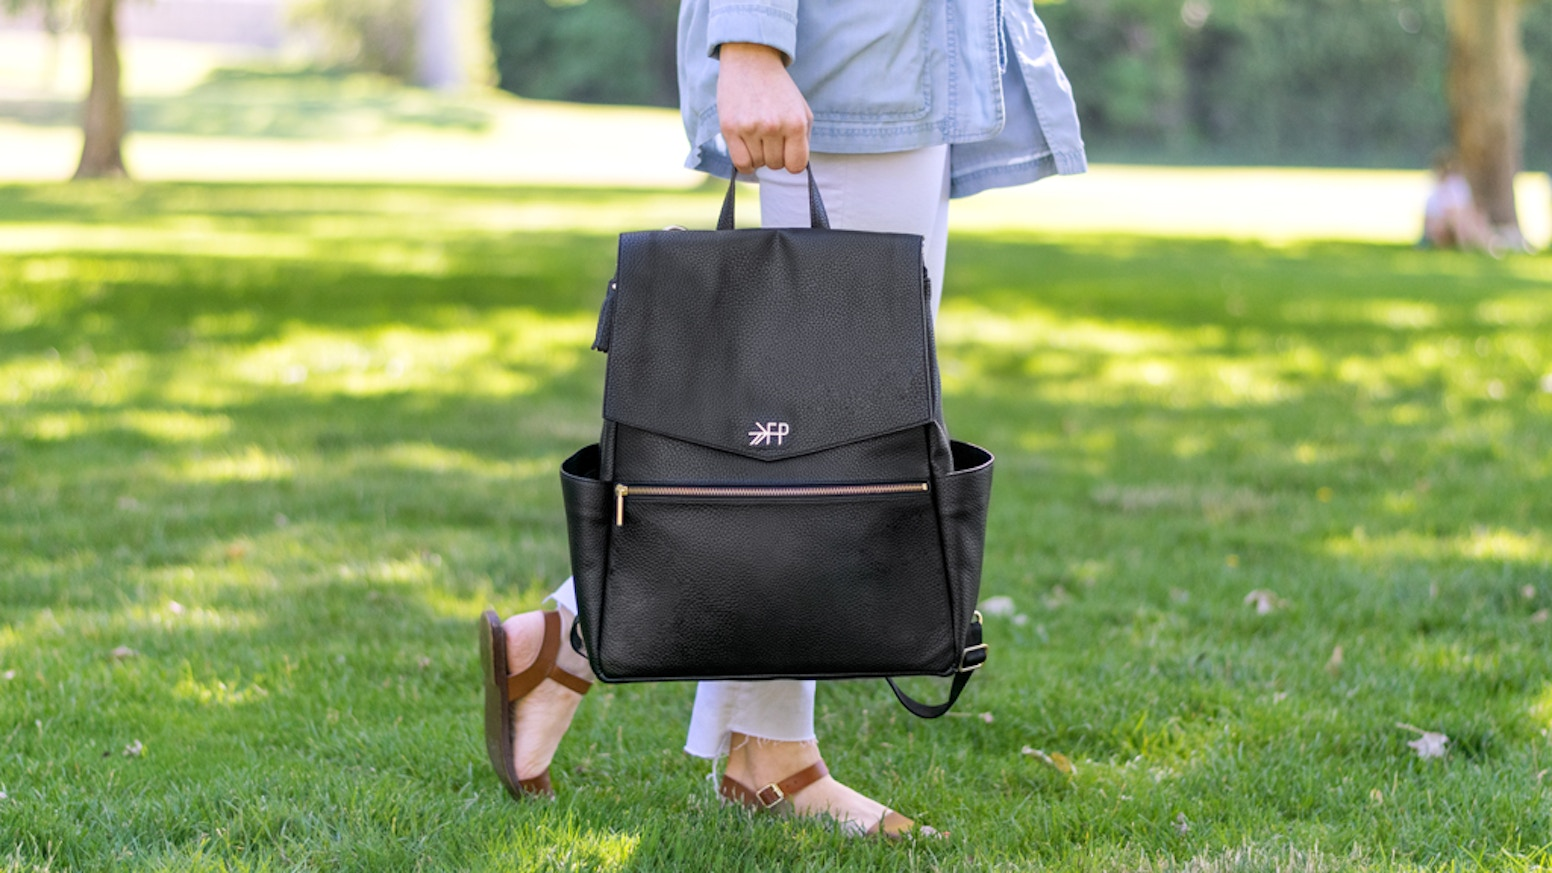 The Diaper Bags Are Entering Production And Will Be Available For Purchase On Freshlypicked